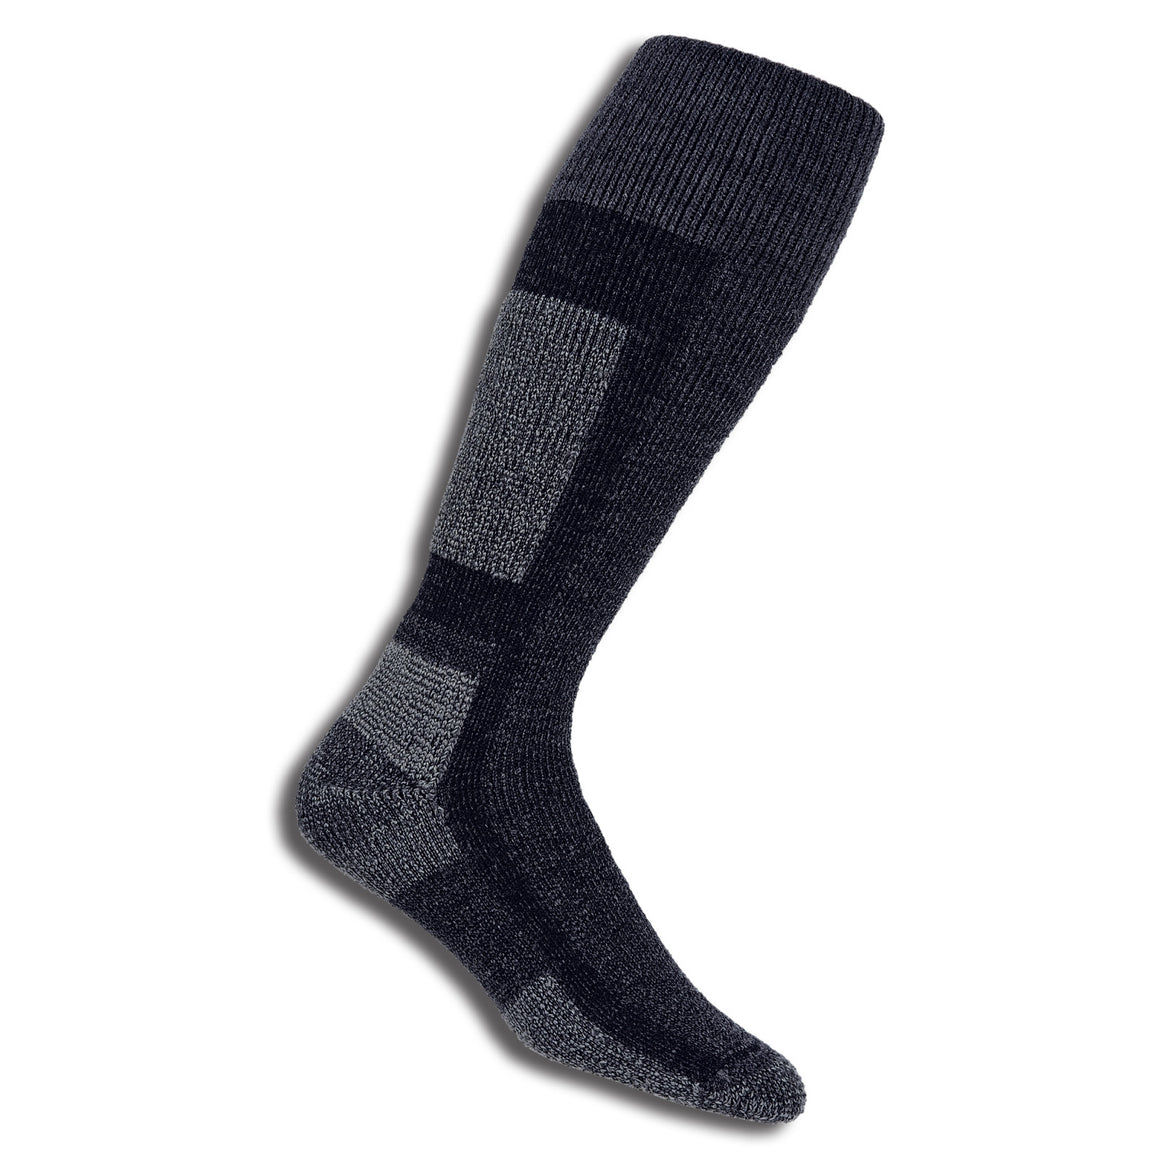 Snowboarding Socks - Unisex Over-calf